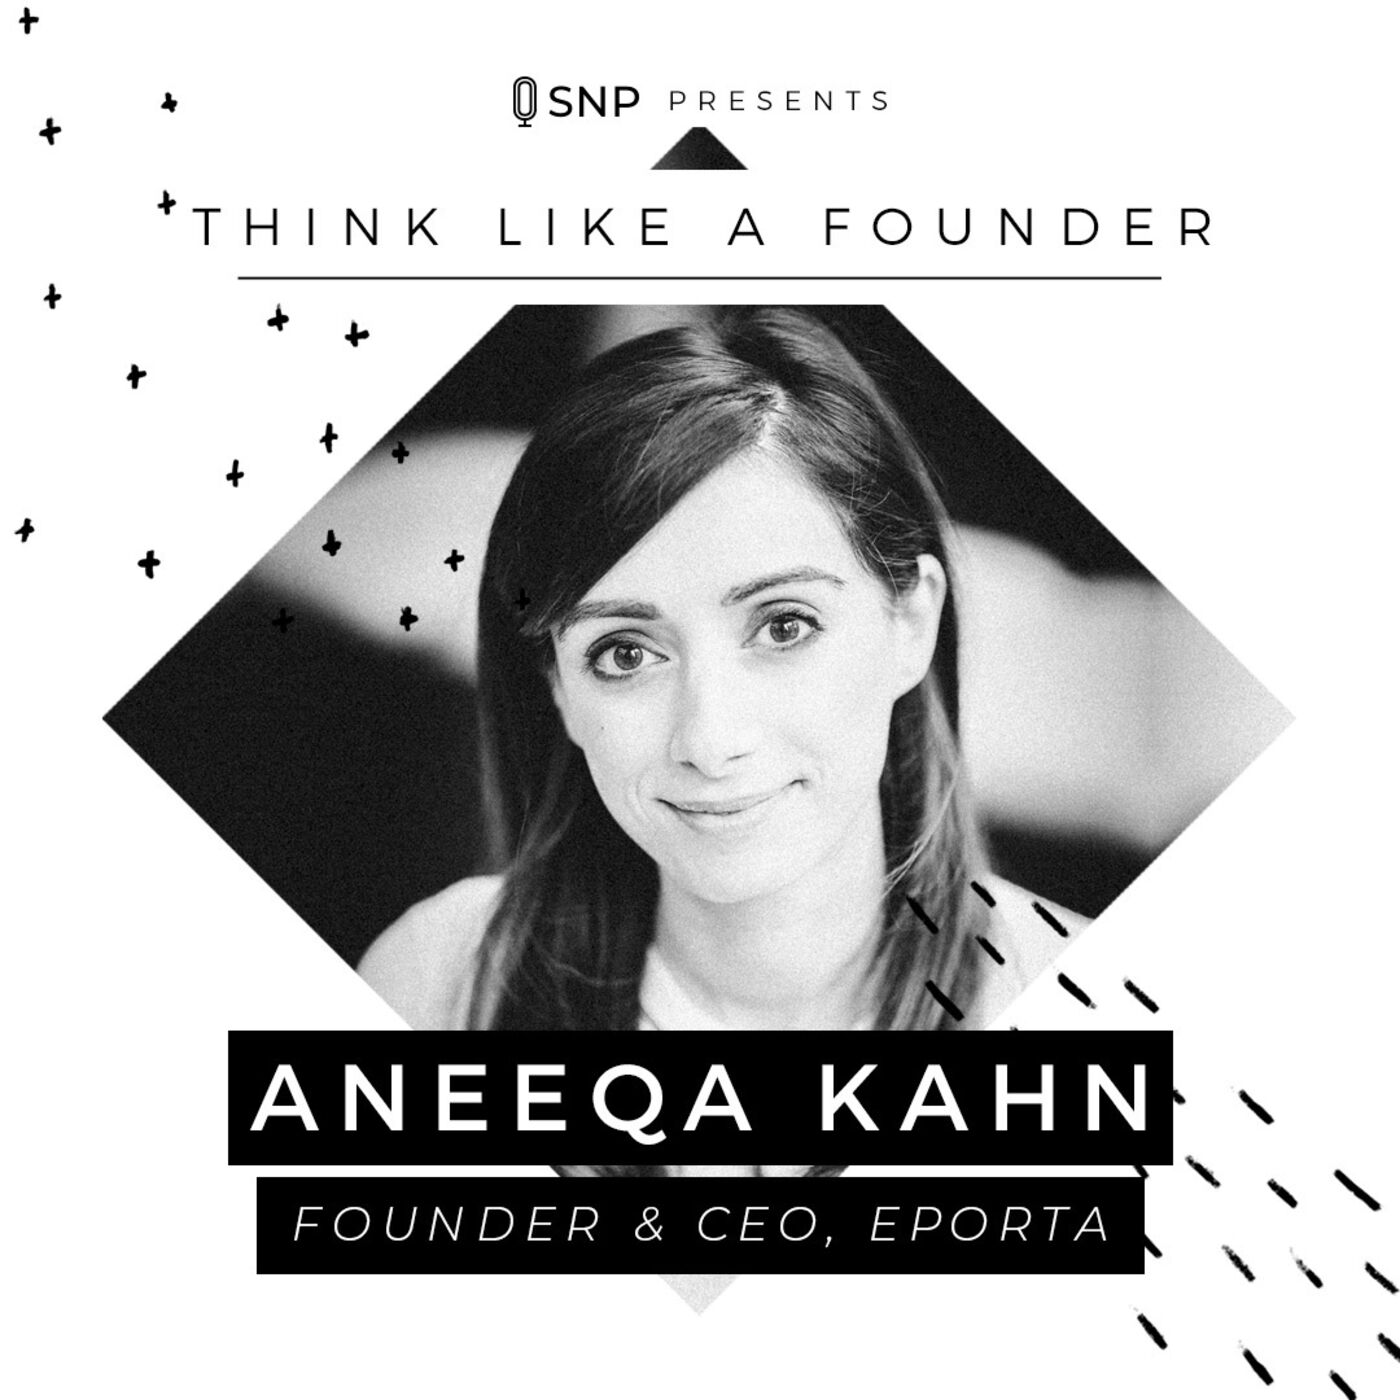 014: Aneeqa Kahn - Founder and CEO of eporta